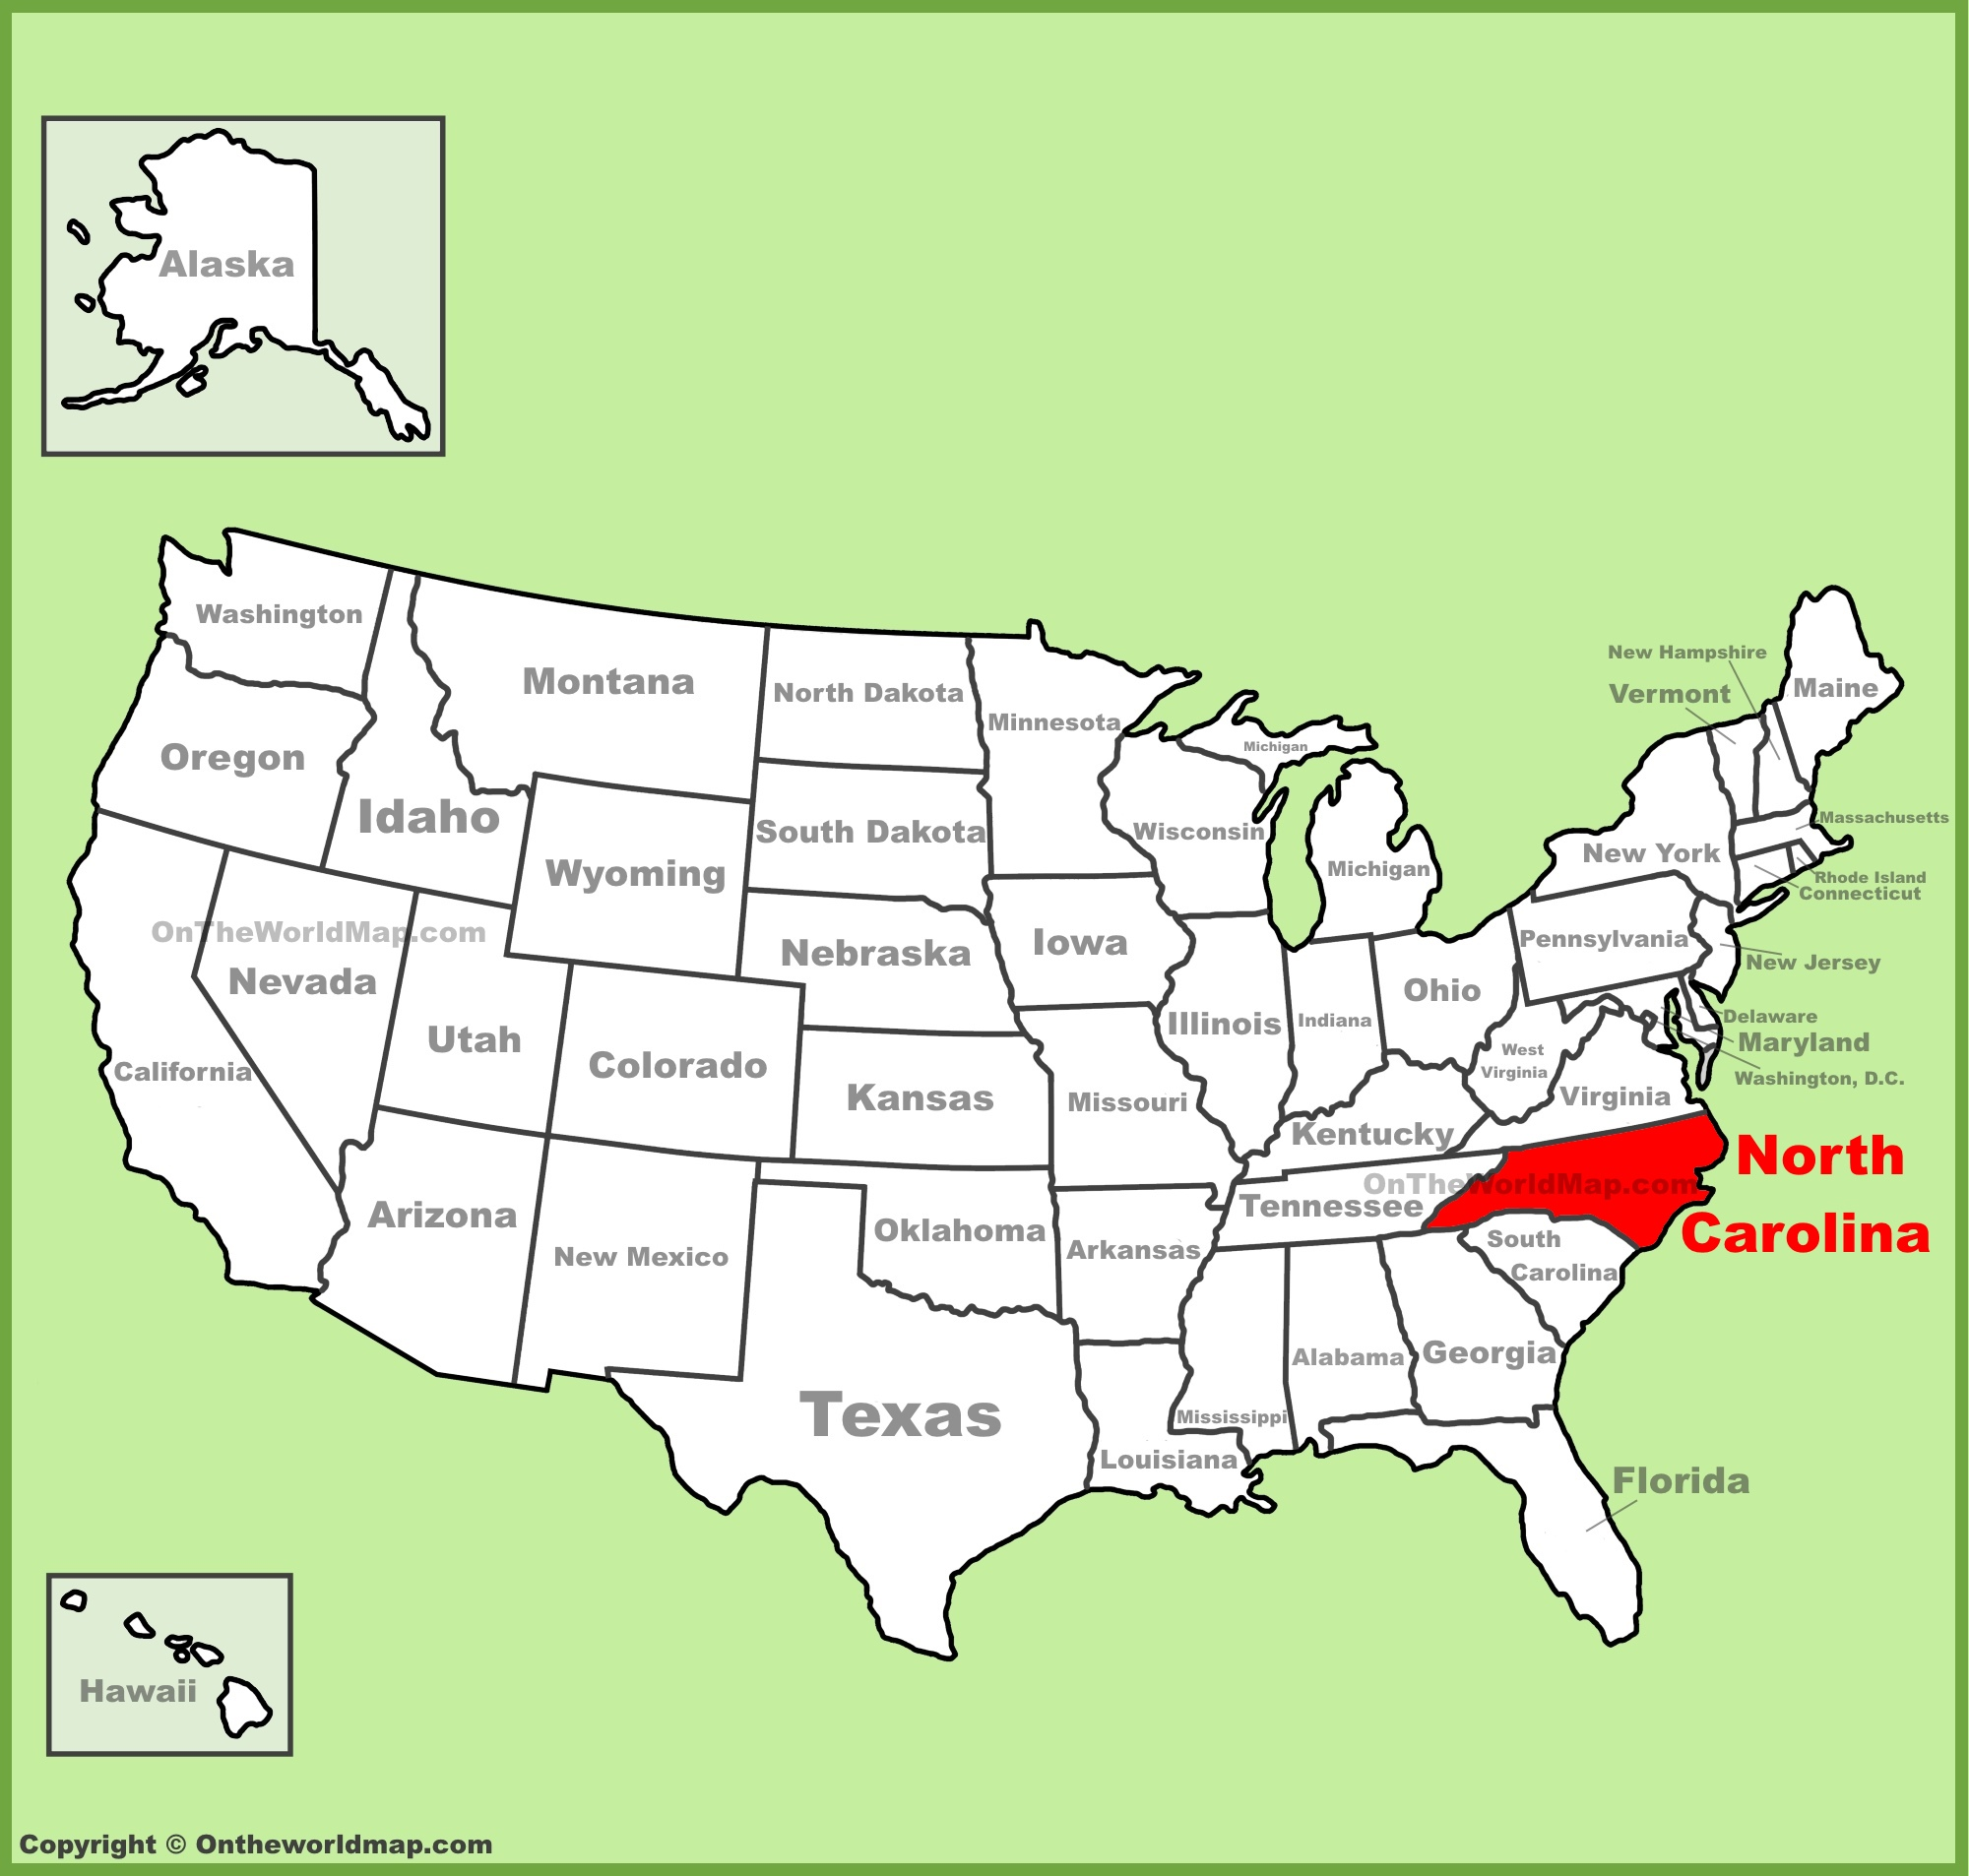 North Carolina State Maps USA – North Carolina Travel Map